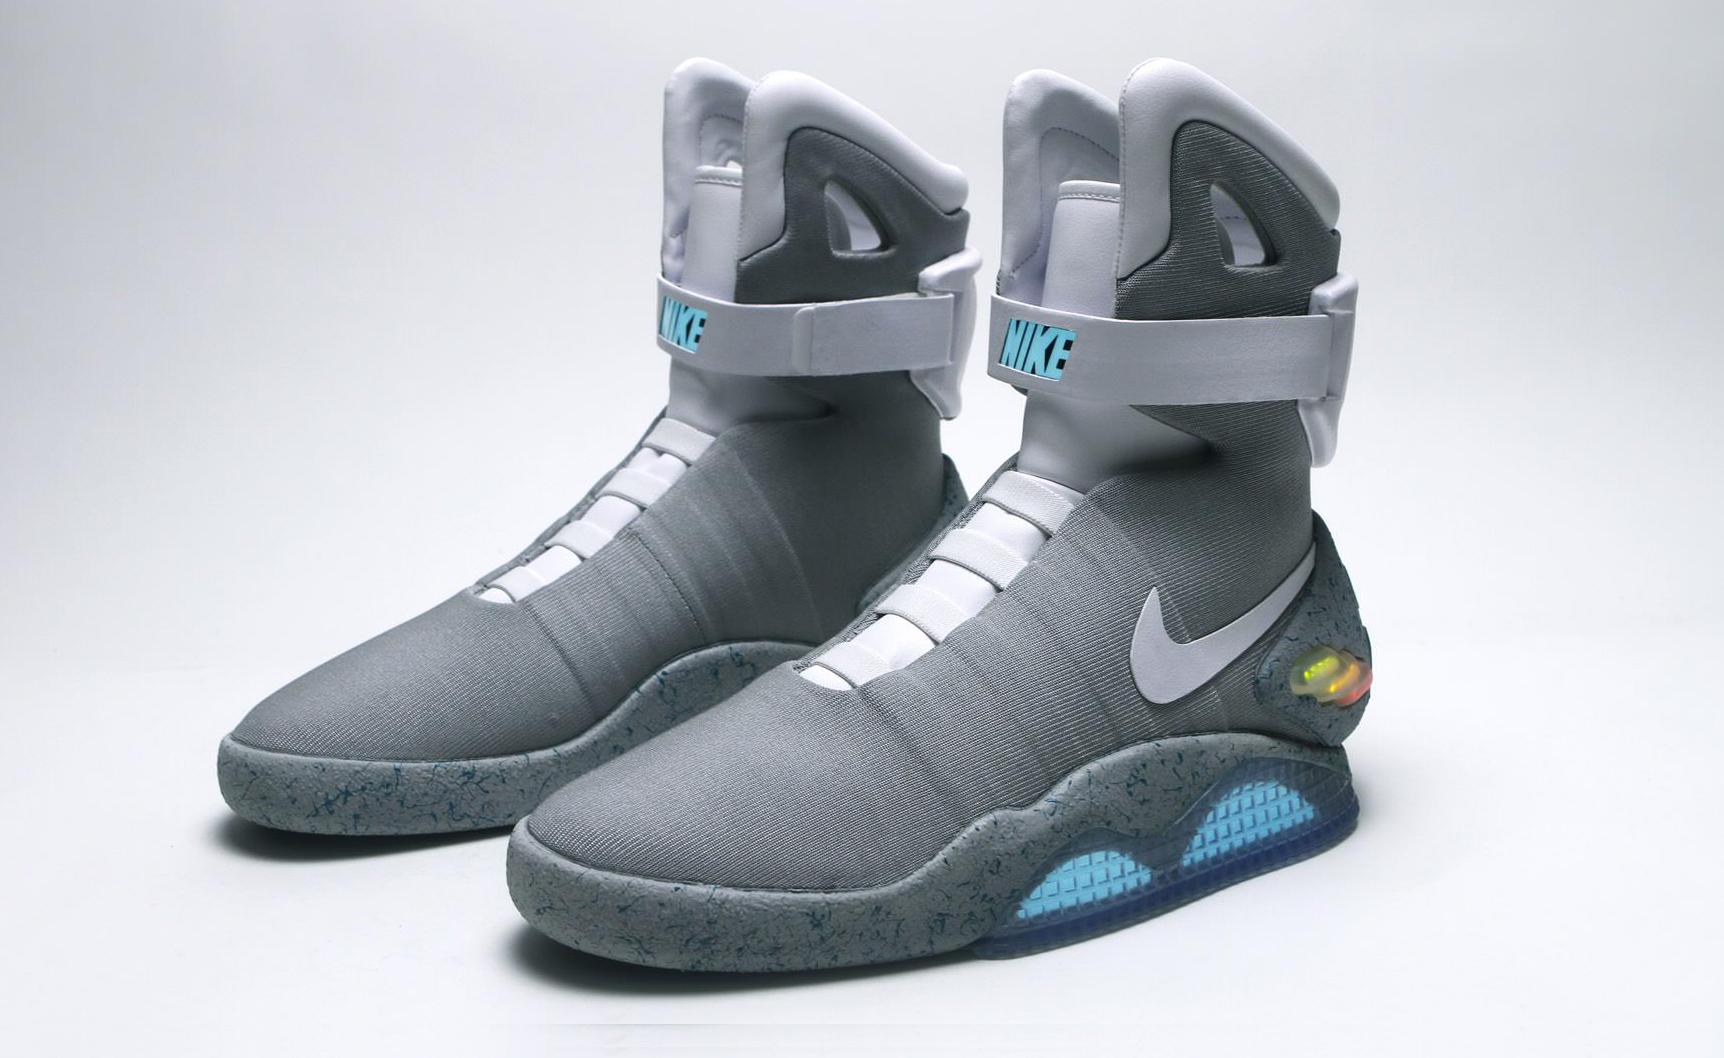 f15ac621ef8351 ... Nike MAGs From Back to the Future II. With power laces!